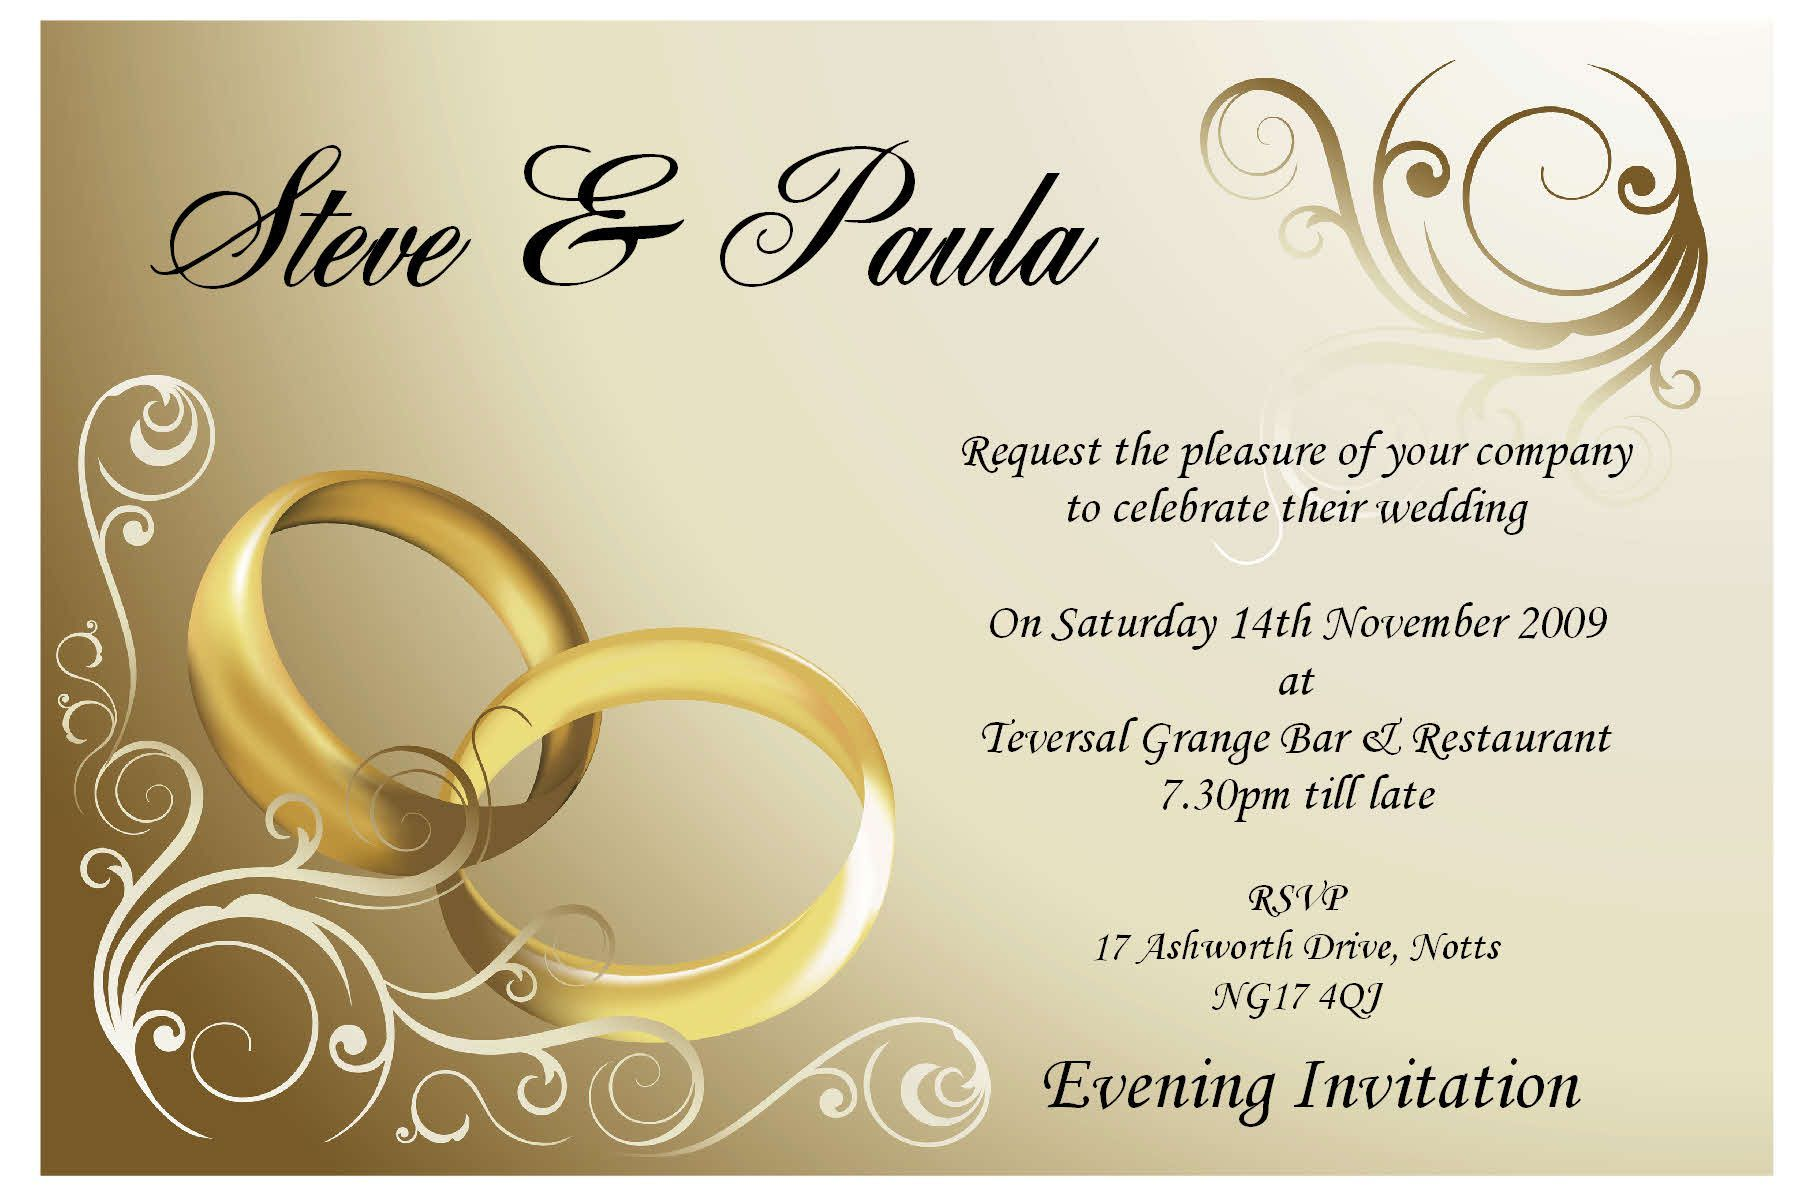 Invitation Wedding Card: Wedding Invitation Card Design Online Free